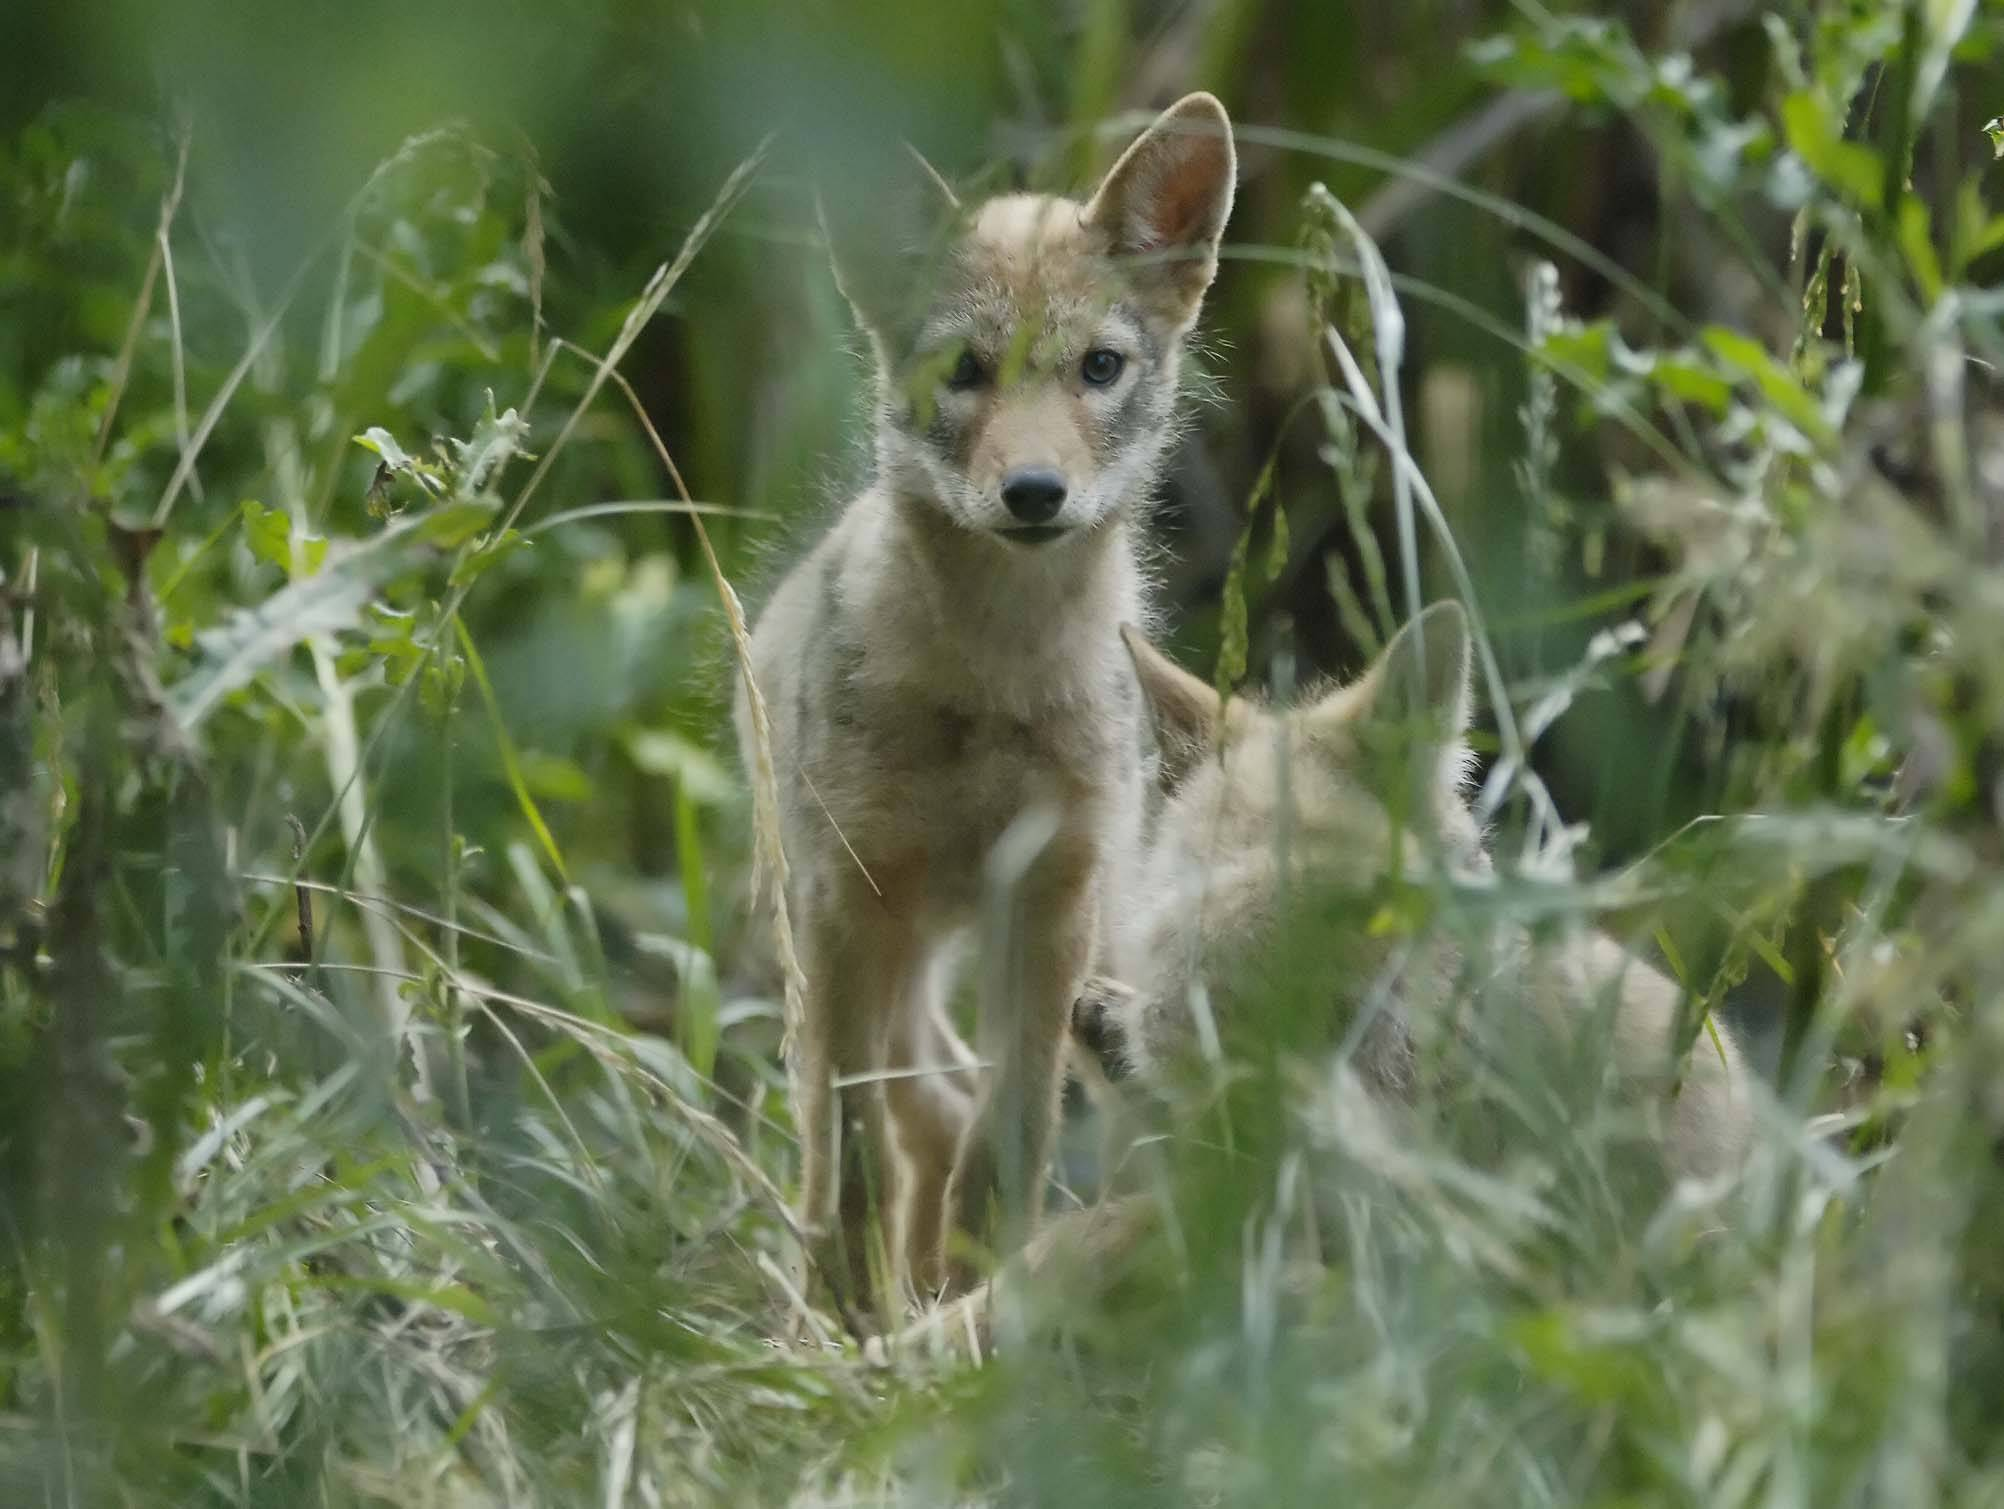 The coyote population is on the rise in many communities because of increased development and other changes that bring the usually shy animals in closer contact with humans.